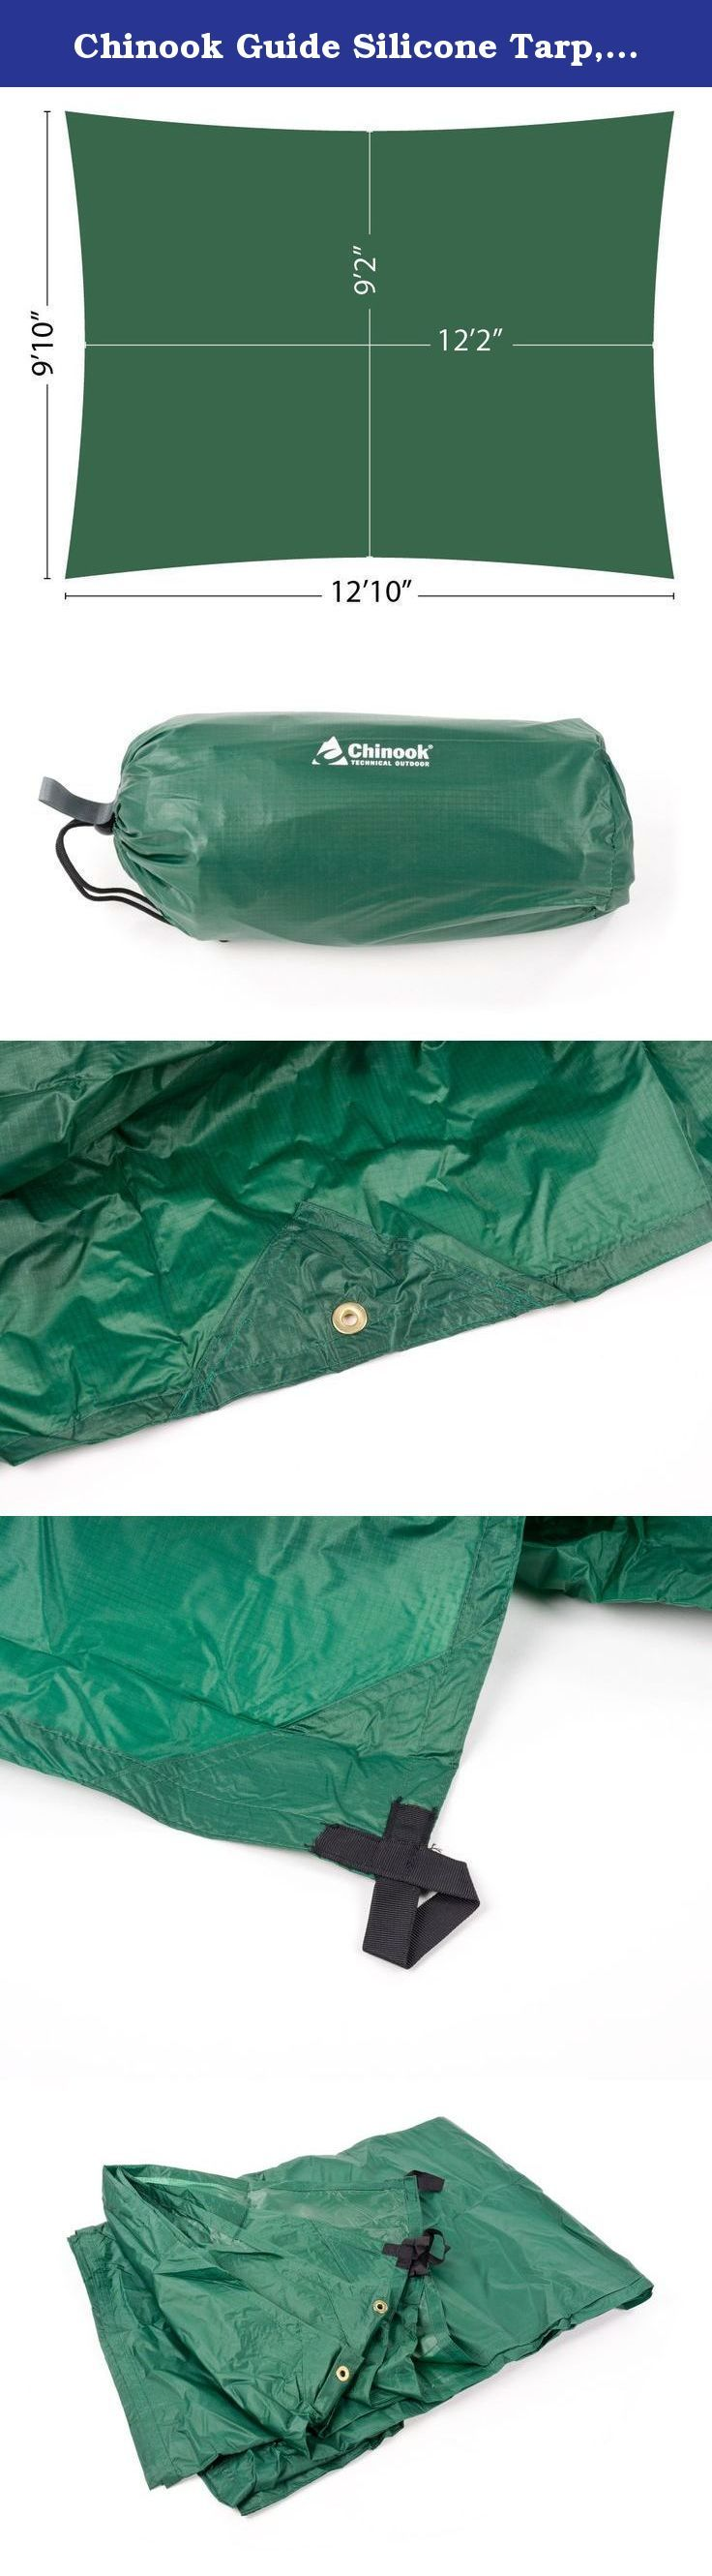 Chinook Guide Silicone Tarp, 12 X 9-Feet. These all-condition, all-purpose tarps are perfect anytime you need protection from sun or rain. Compact packing size and lightweight fabric make these the ideal tarps for any backpacking, group camping or water sports trip. Numerous guy points and special catenary cuts ensure a taut pitch.